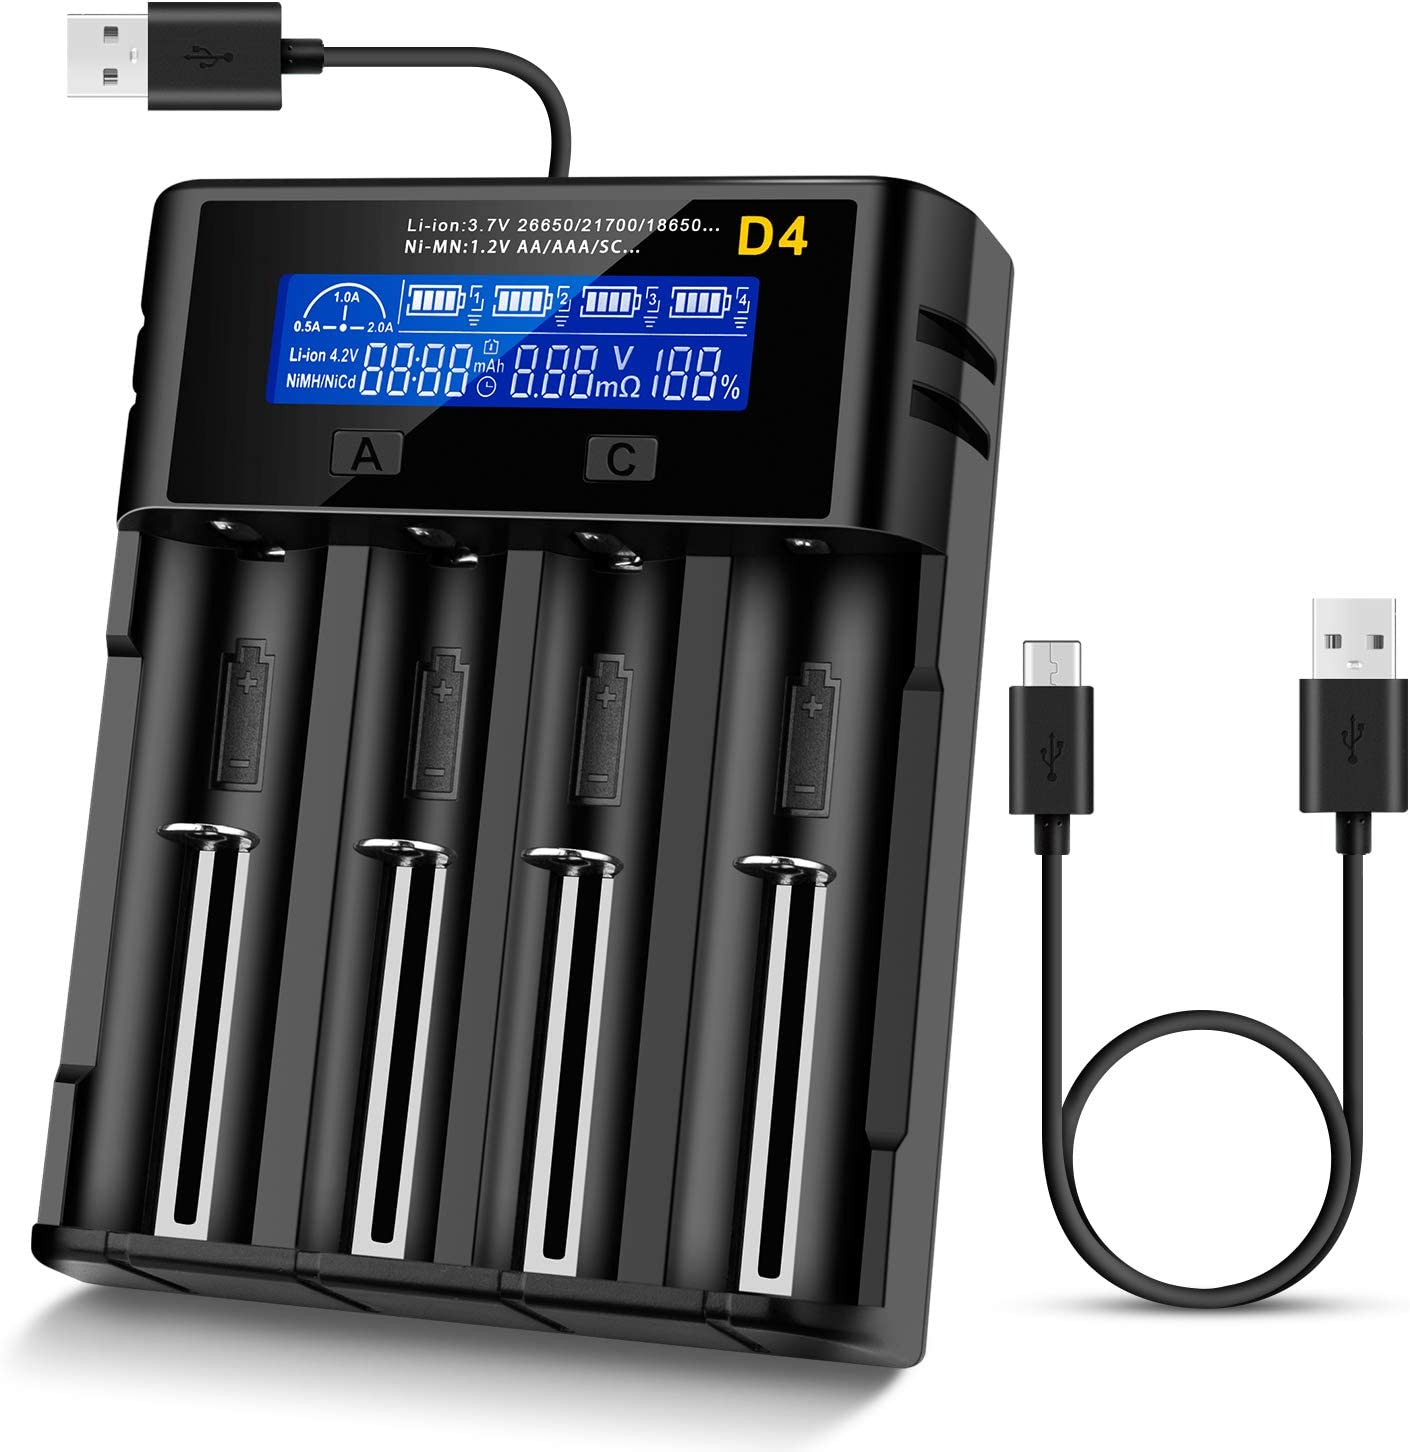 Universal Battery Charger 4 x 2400mah 3.7v Li-ion 16340 Rechargeable Battery